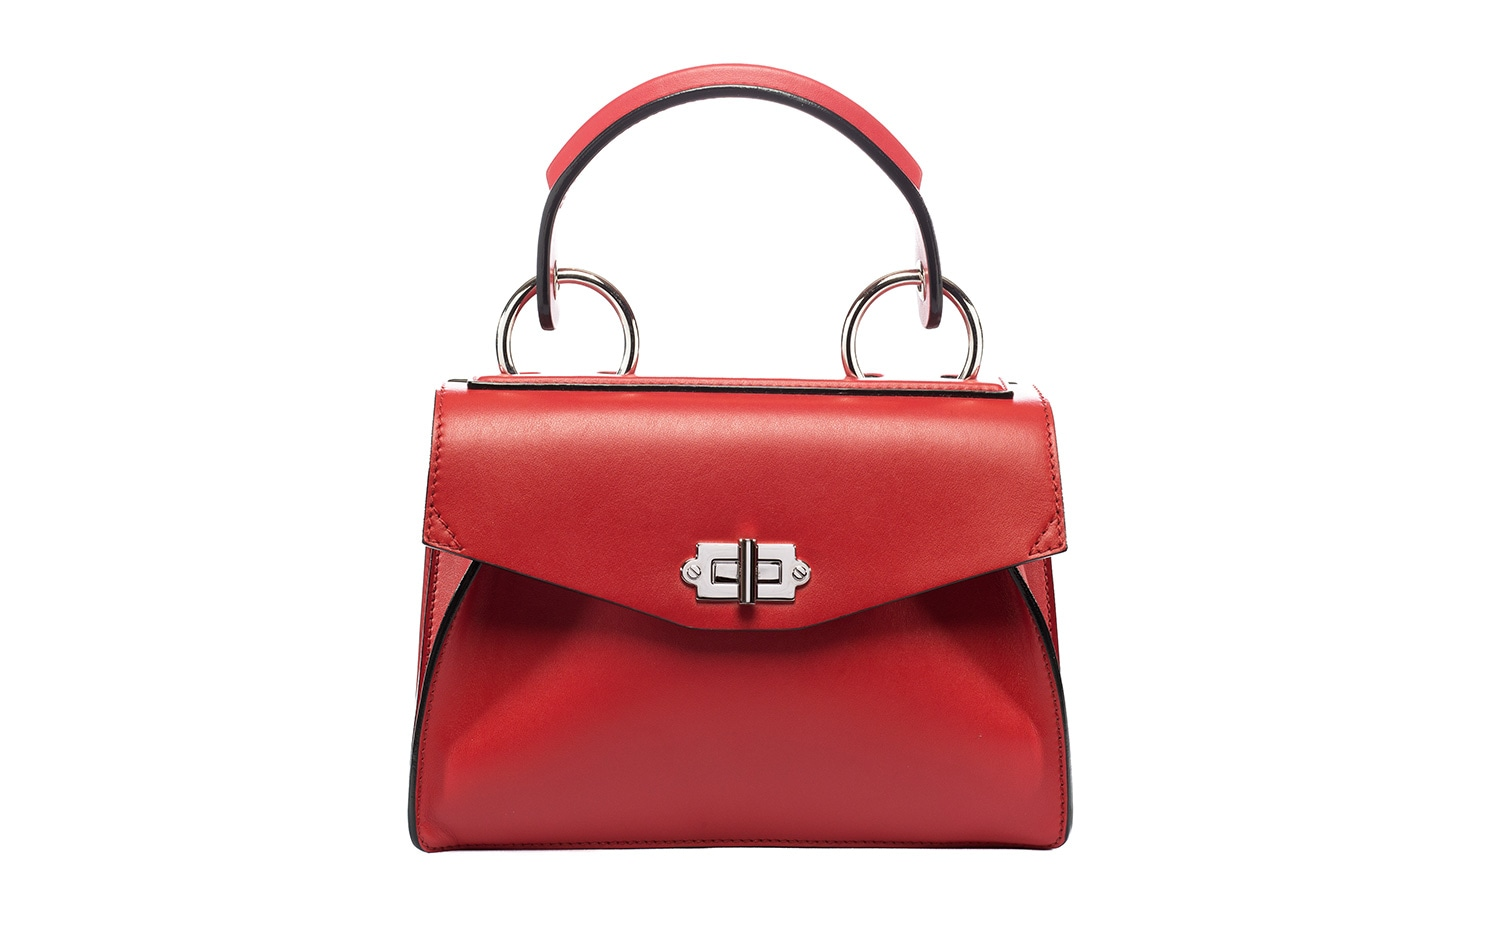 Proenza Schouler: Small Hava Top Handle